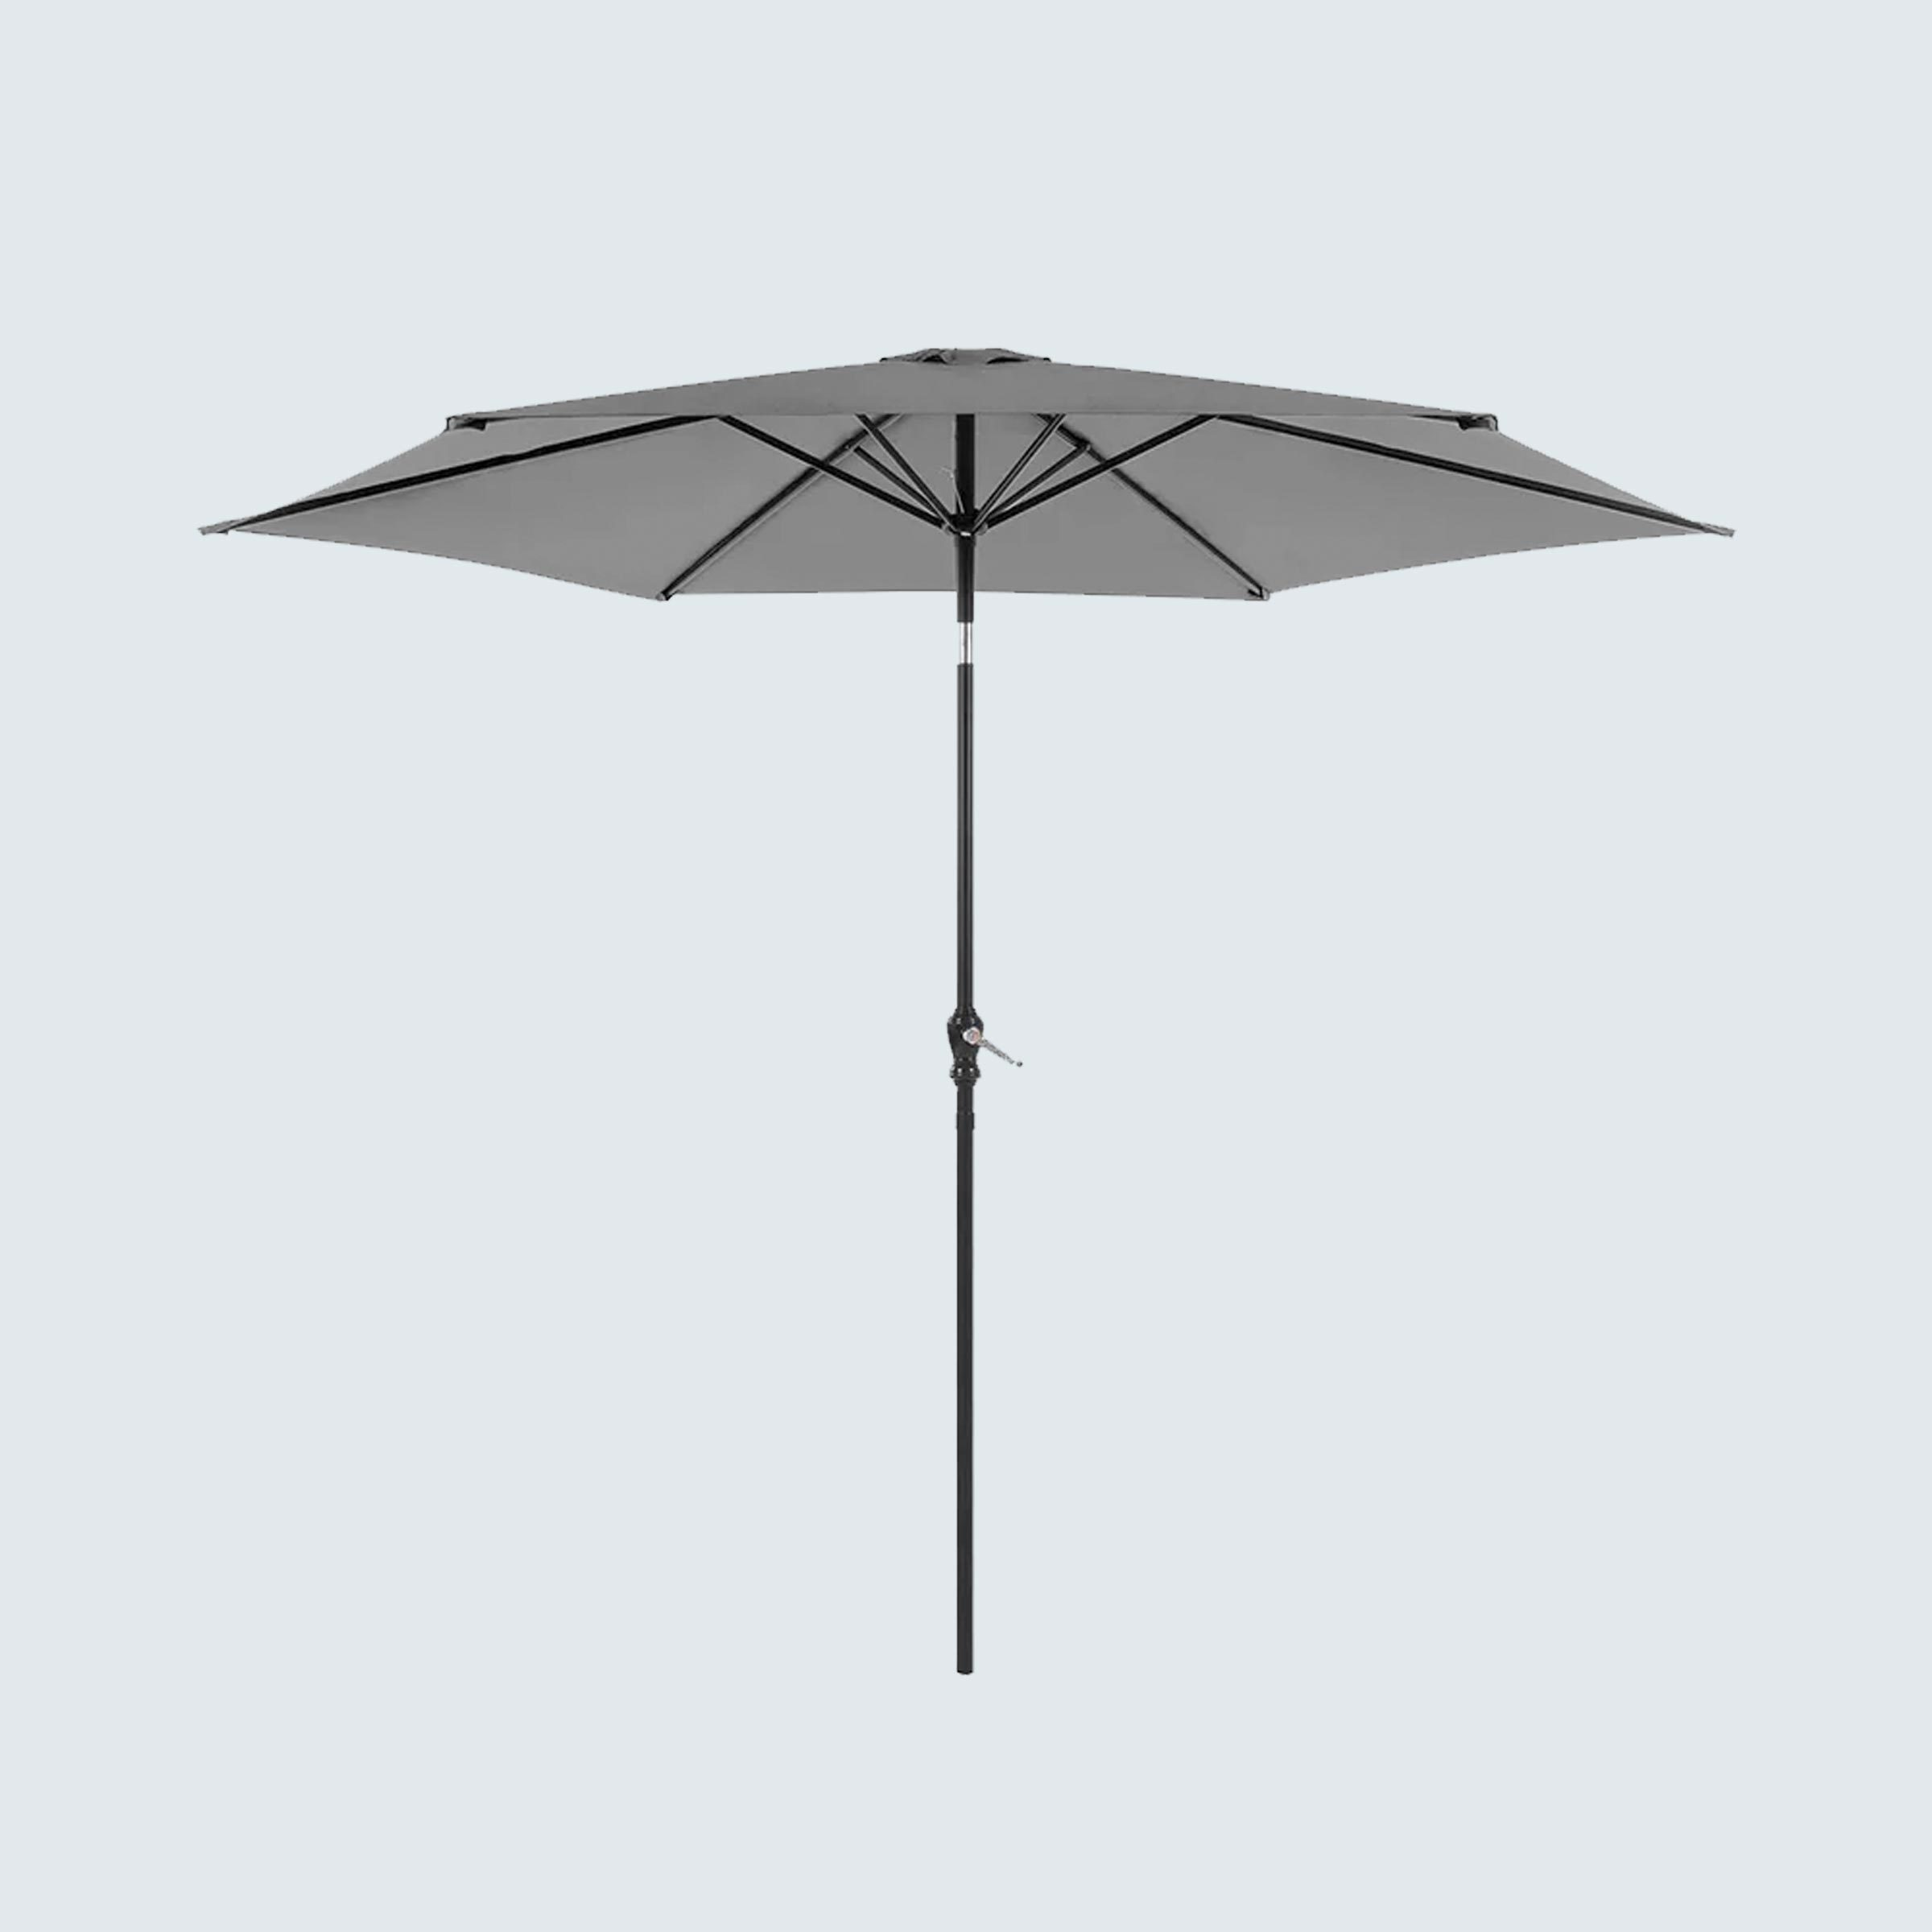 Philpot 11' Market Umbrella